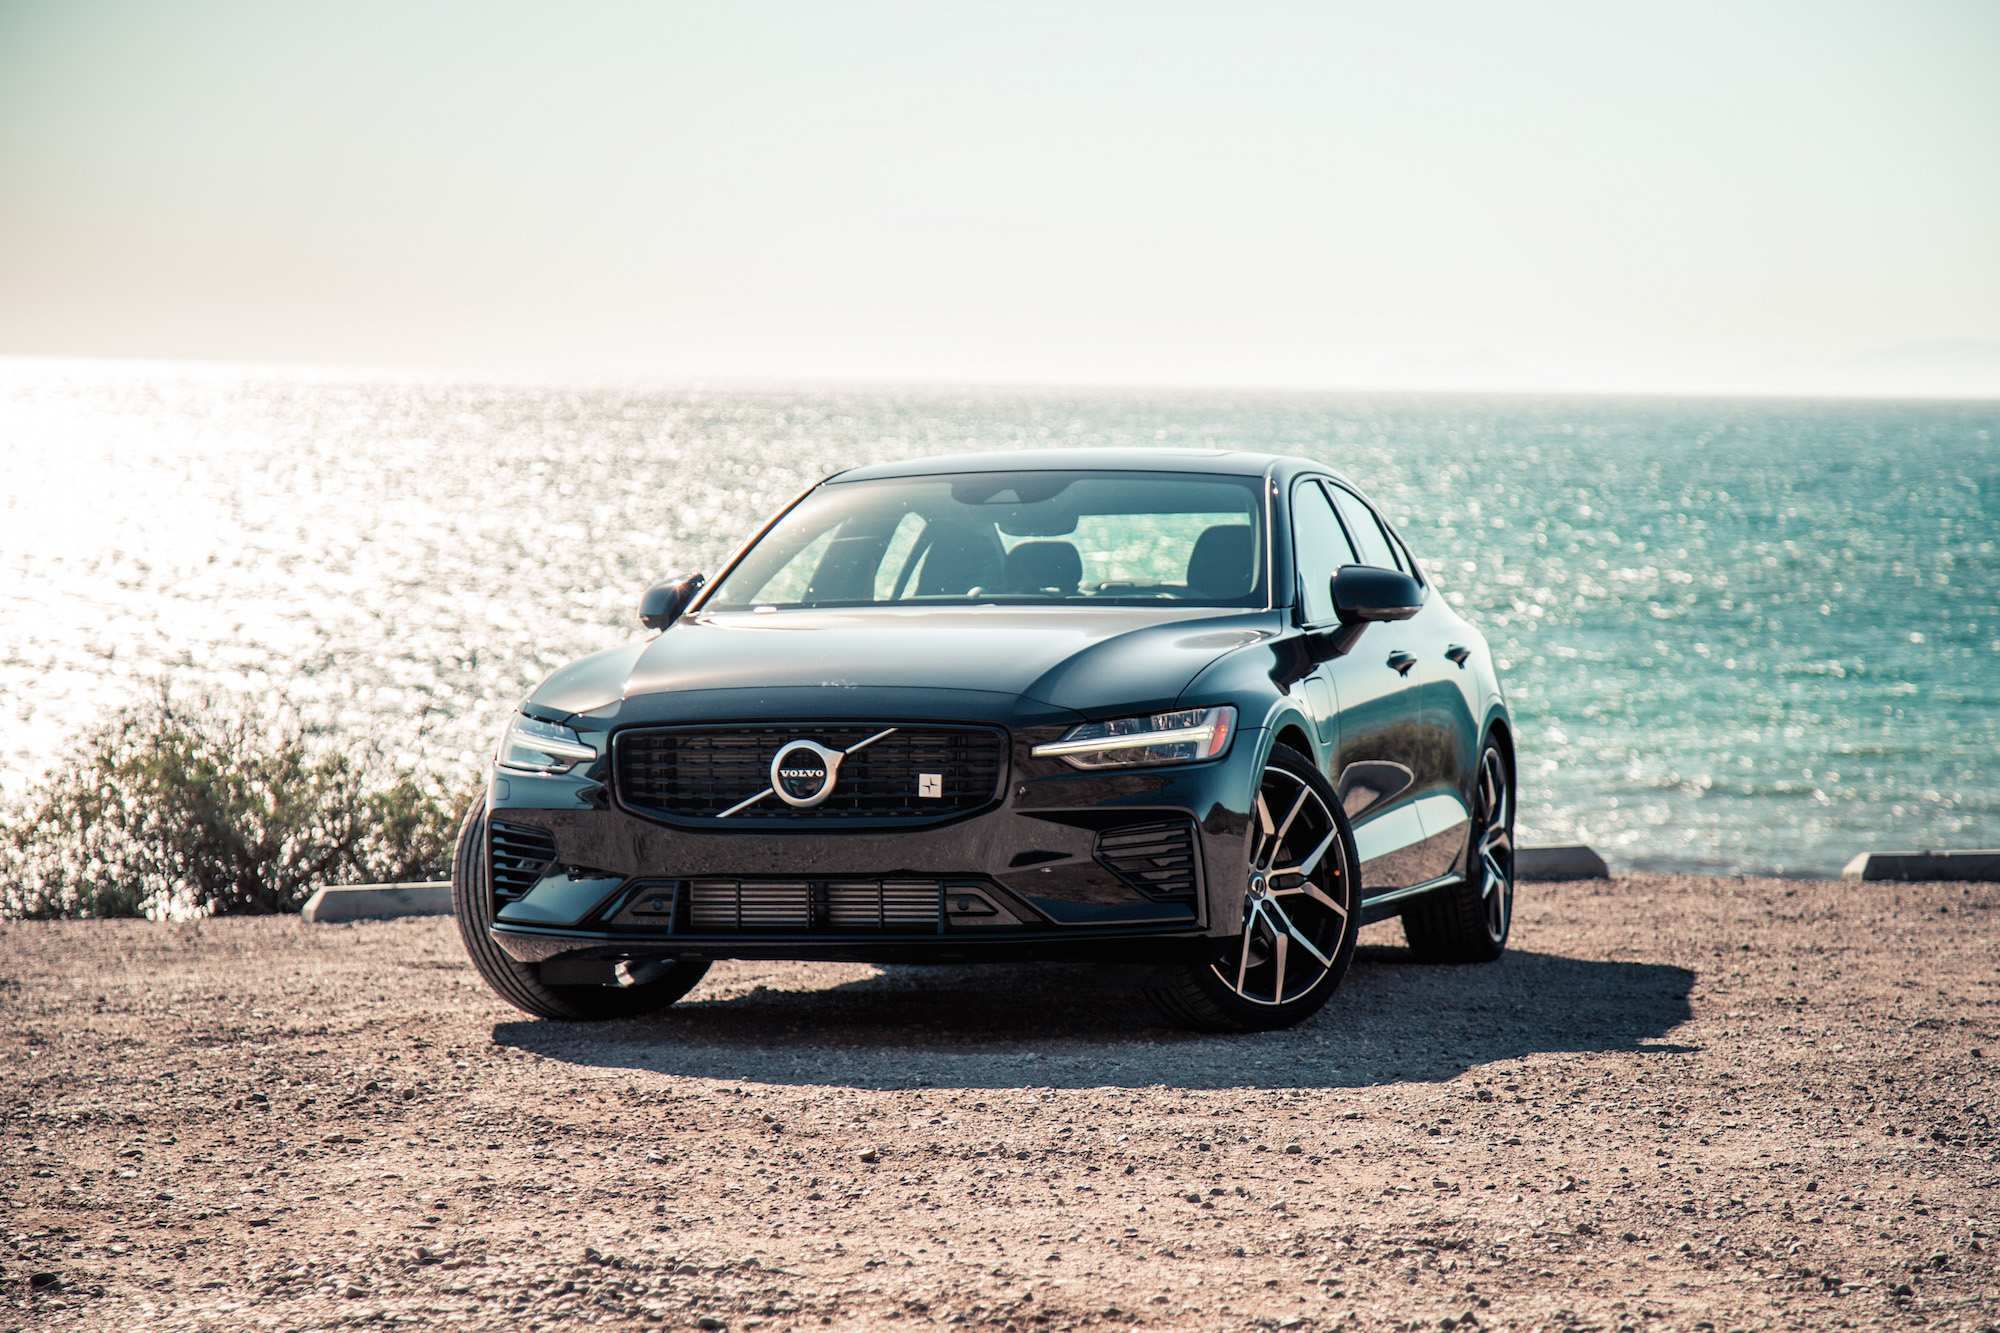 38 New Volvo S60 Polestar 2020 Pictures